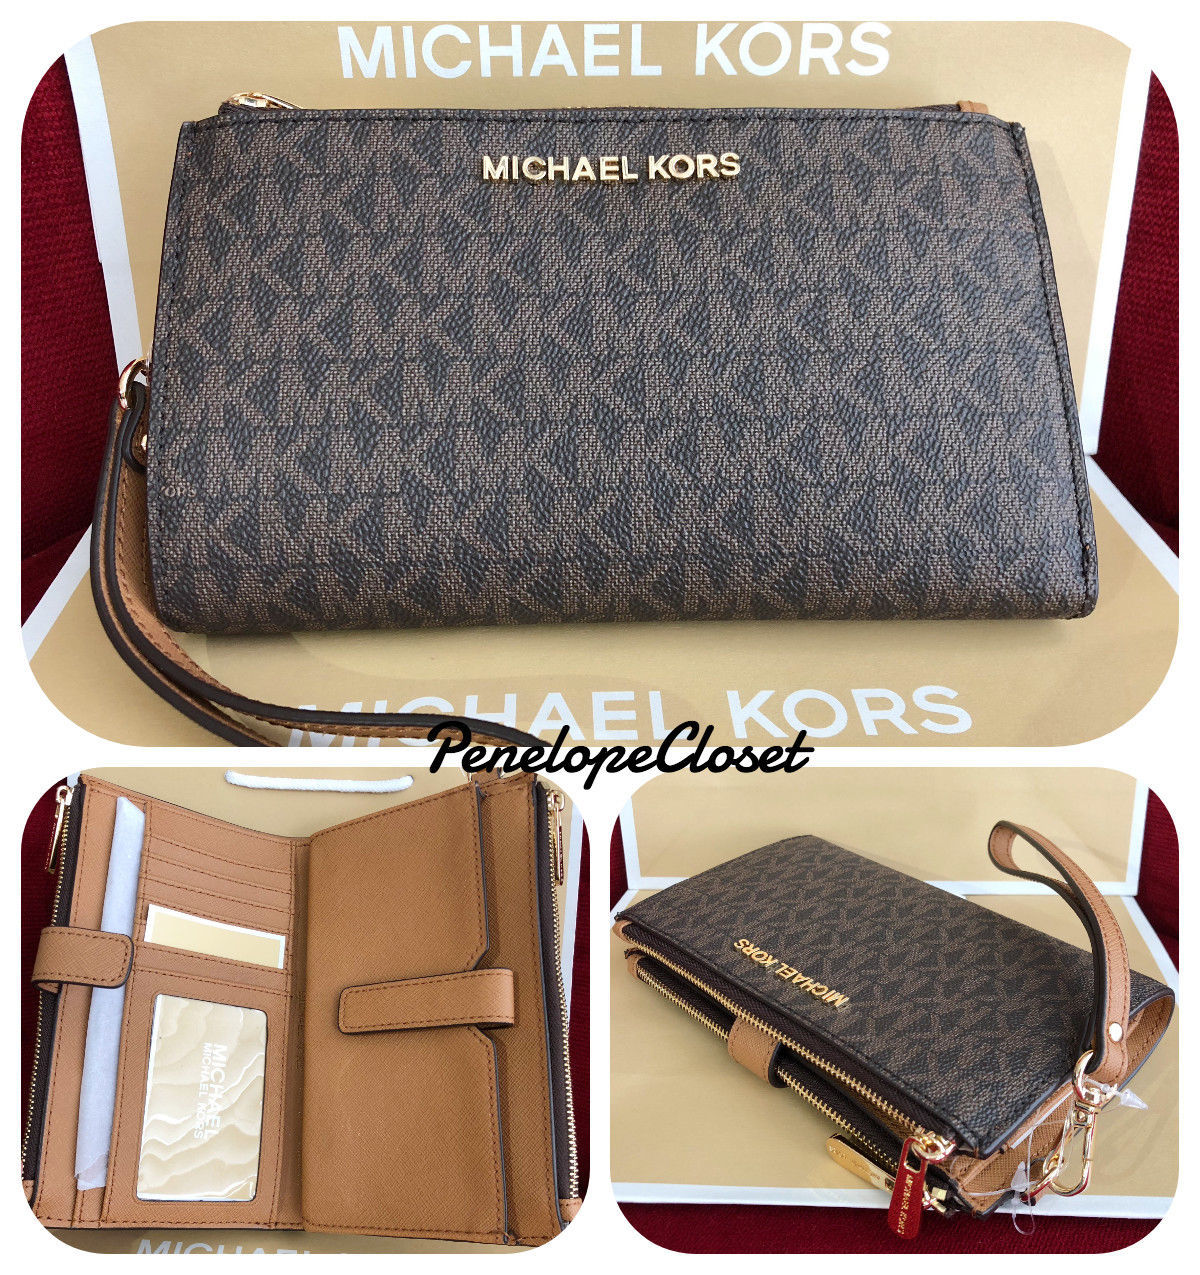 252c499d99f0 Nwt Michael Kors Mk Logo Pvc Jet Set Travel and 50 similar items. 57